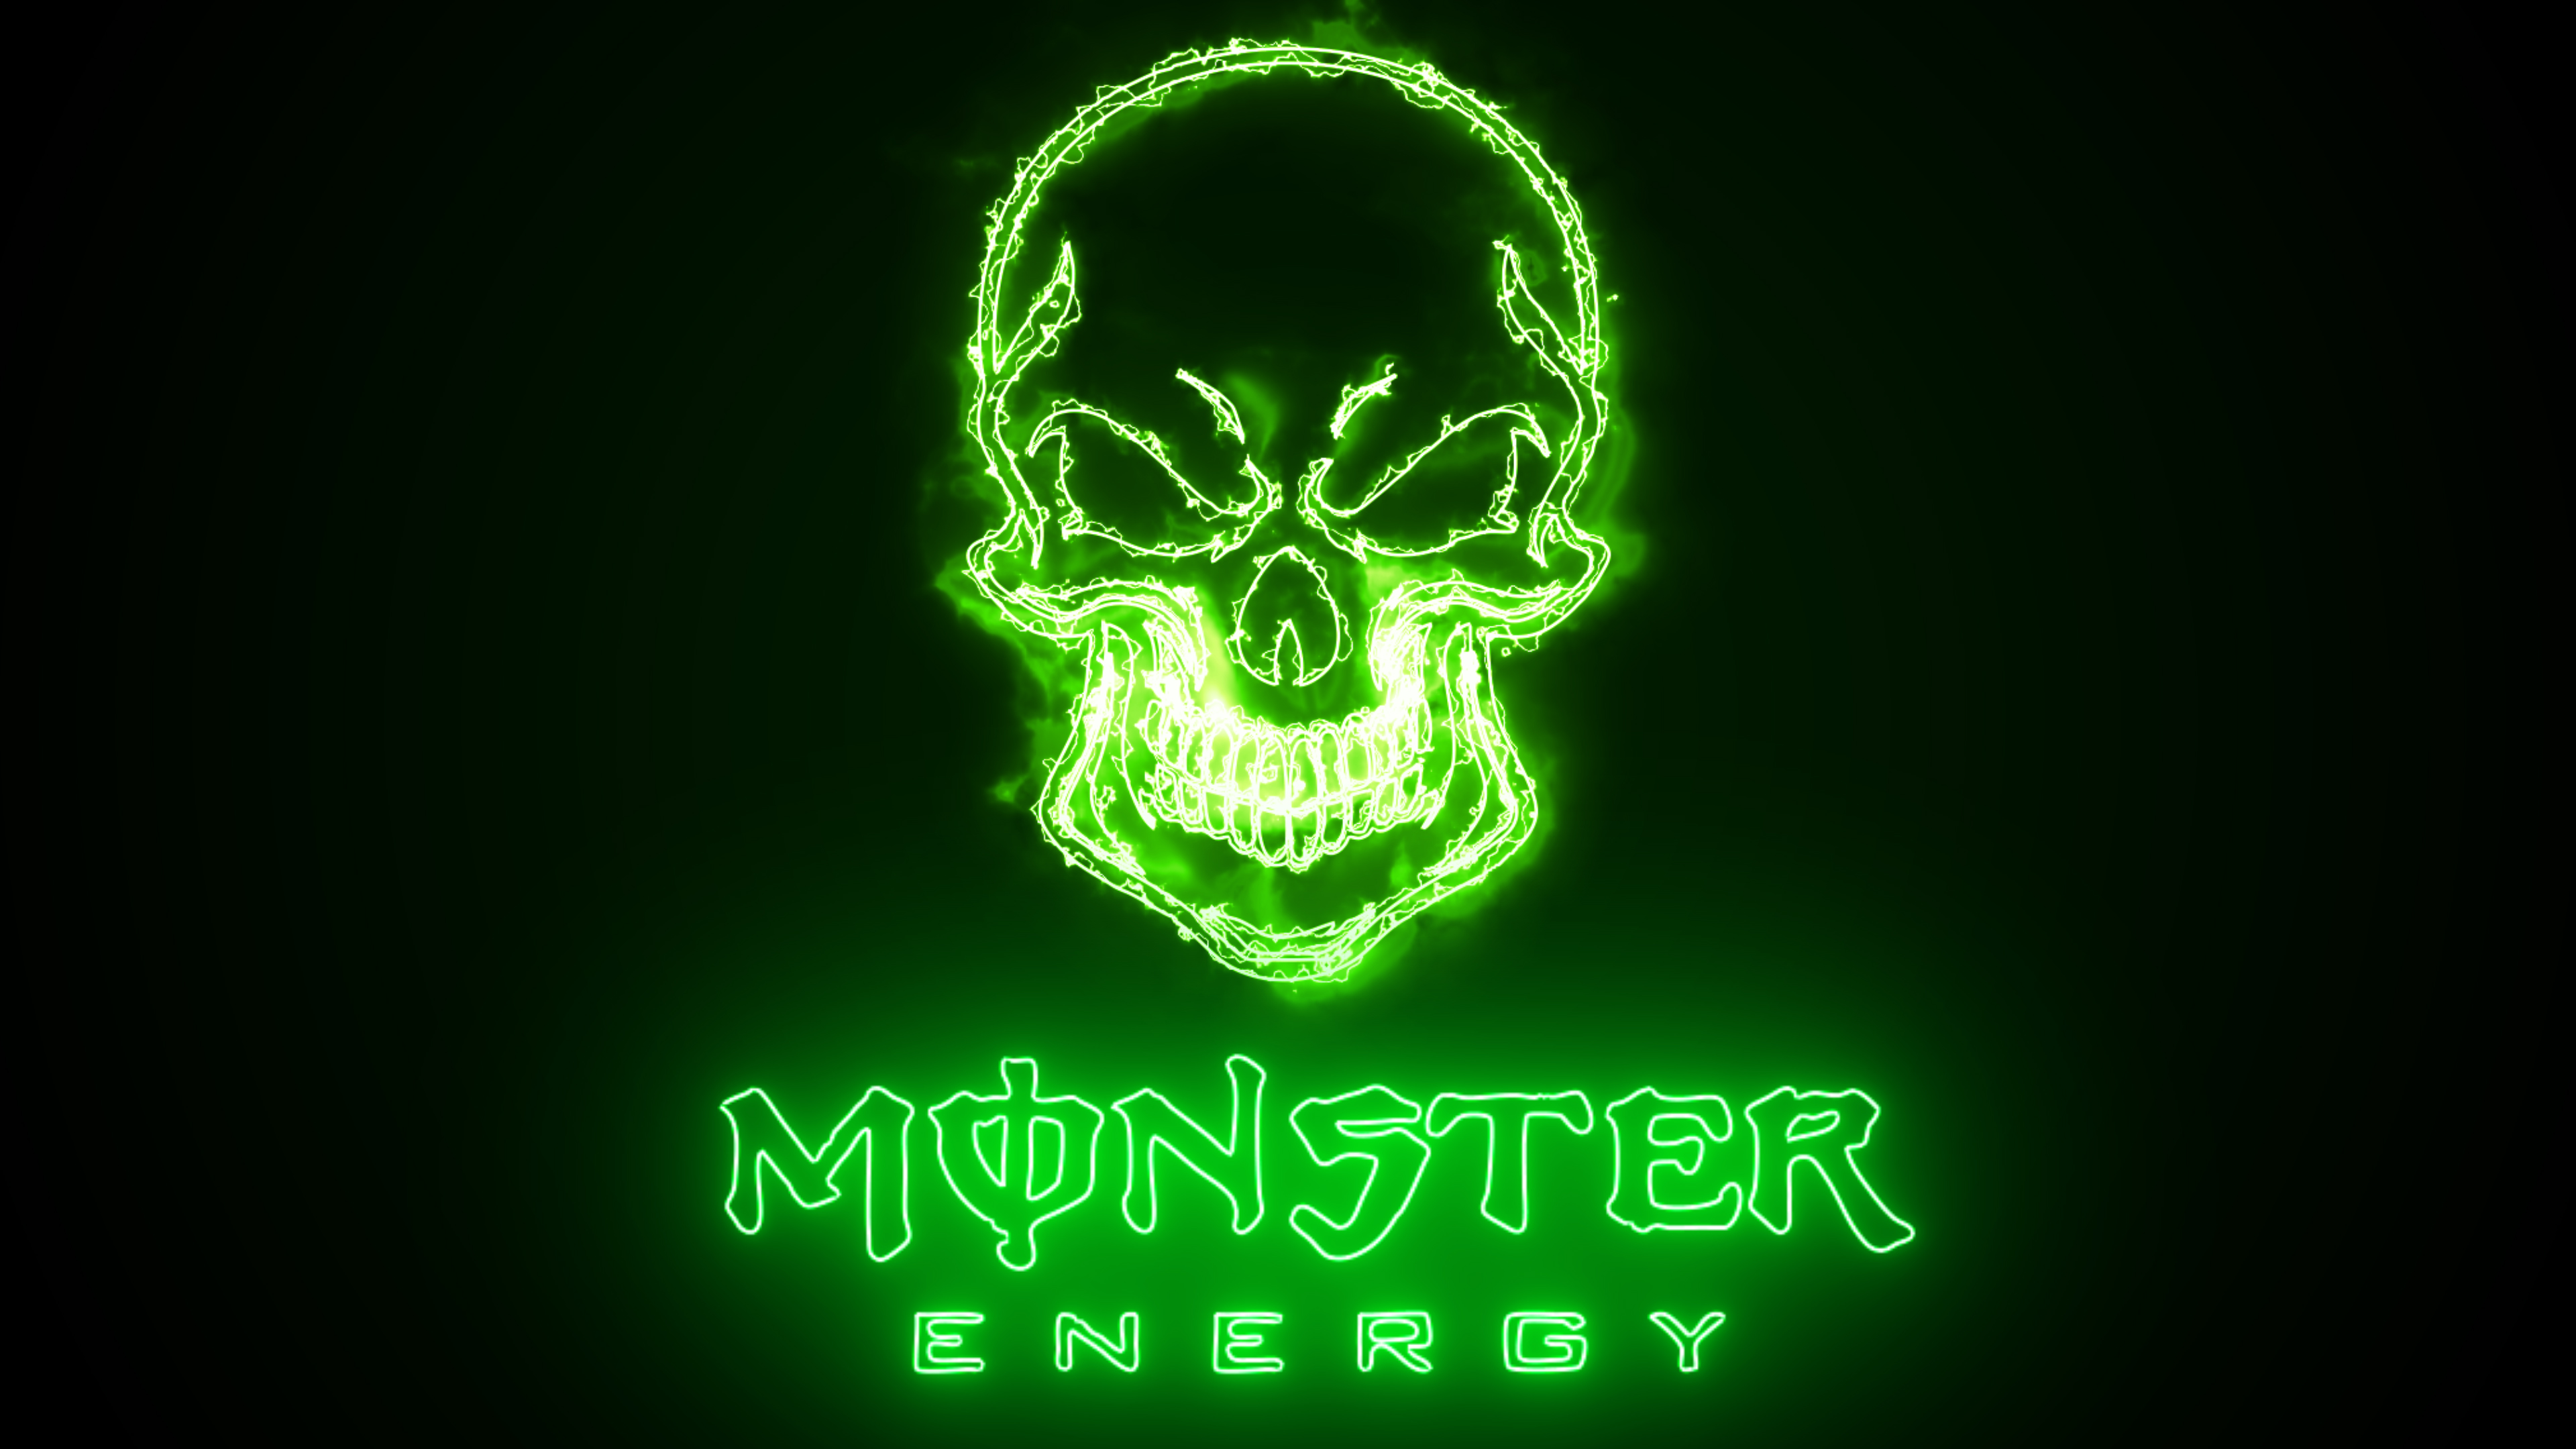 Monster Logo Images Wallpaper And Free Download